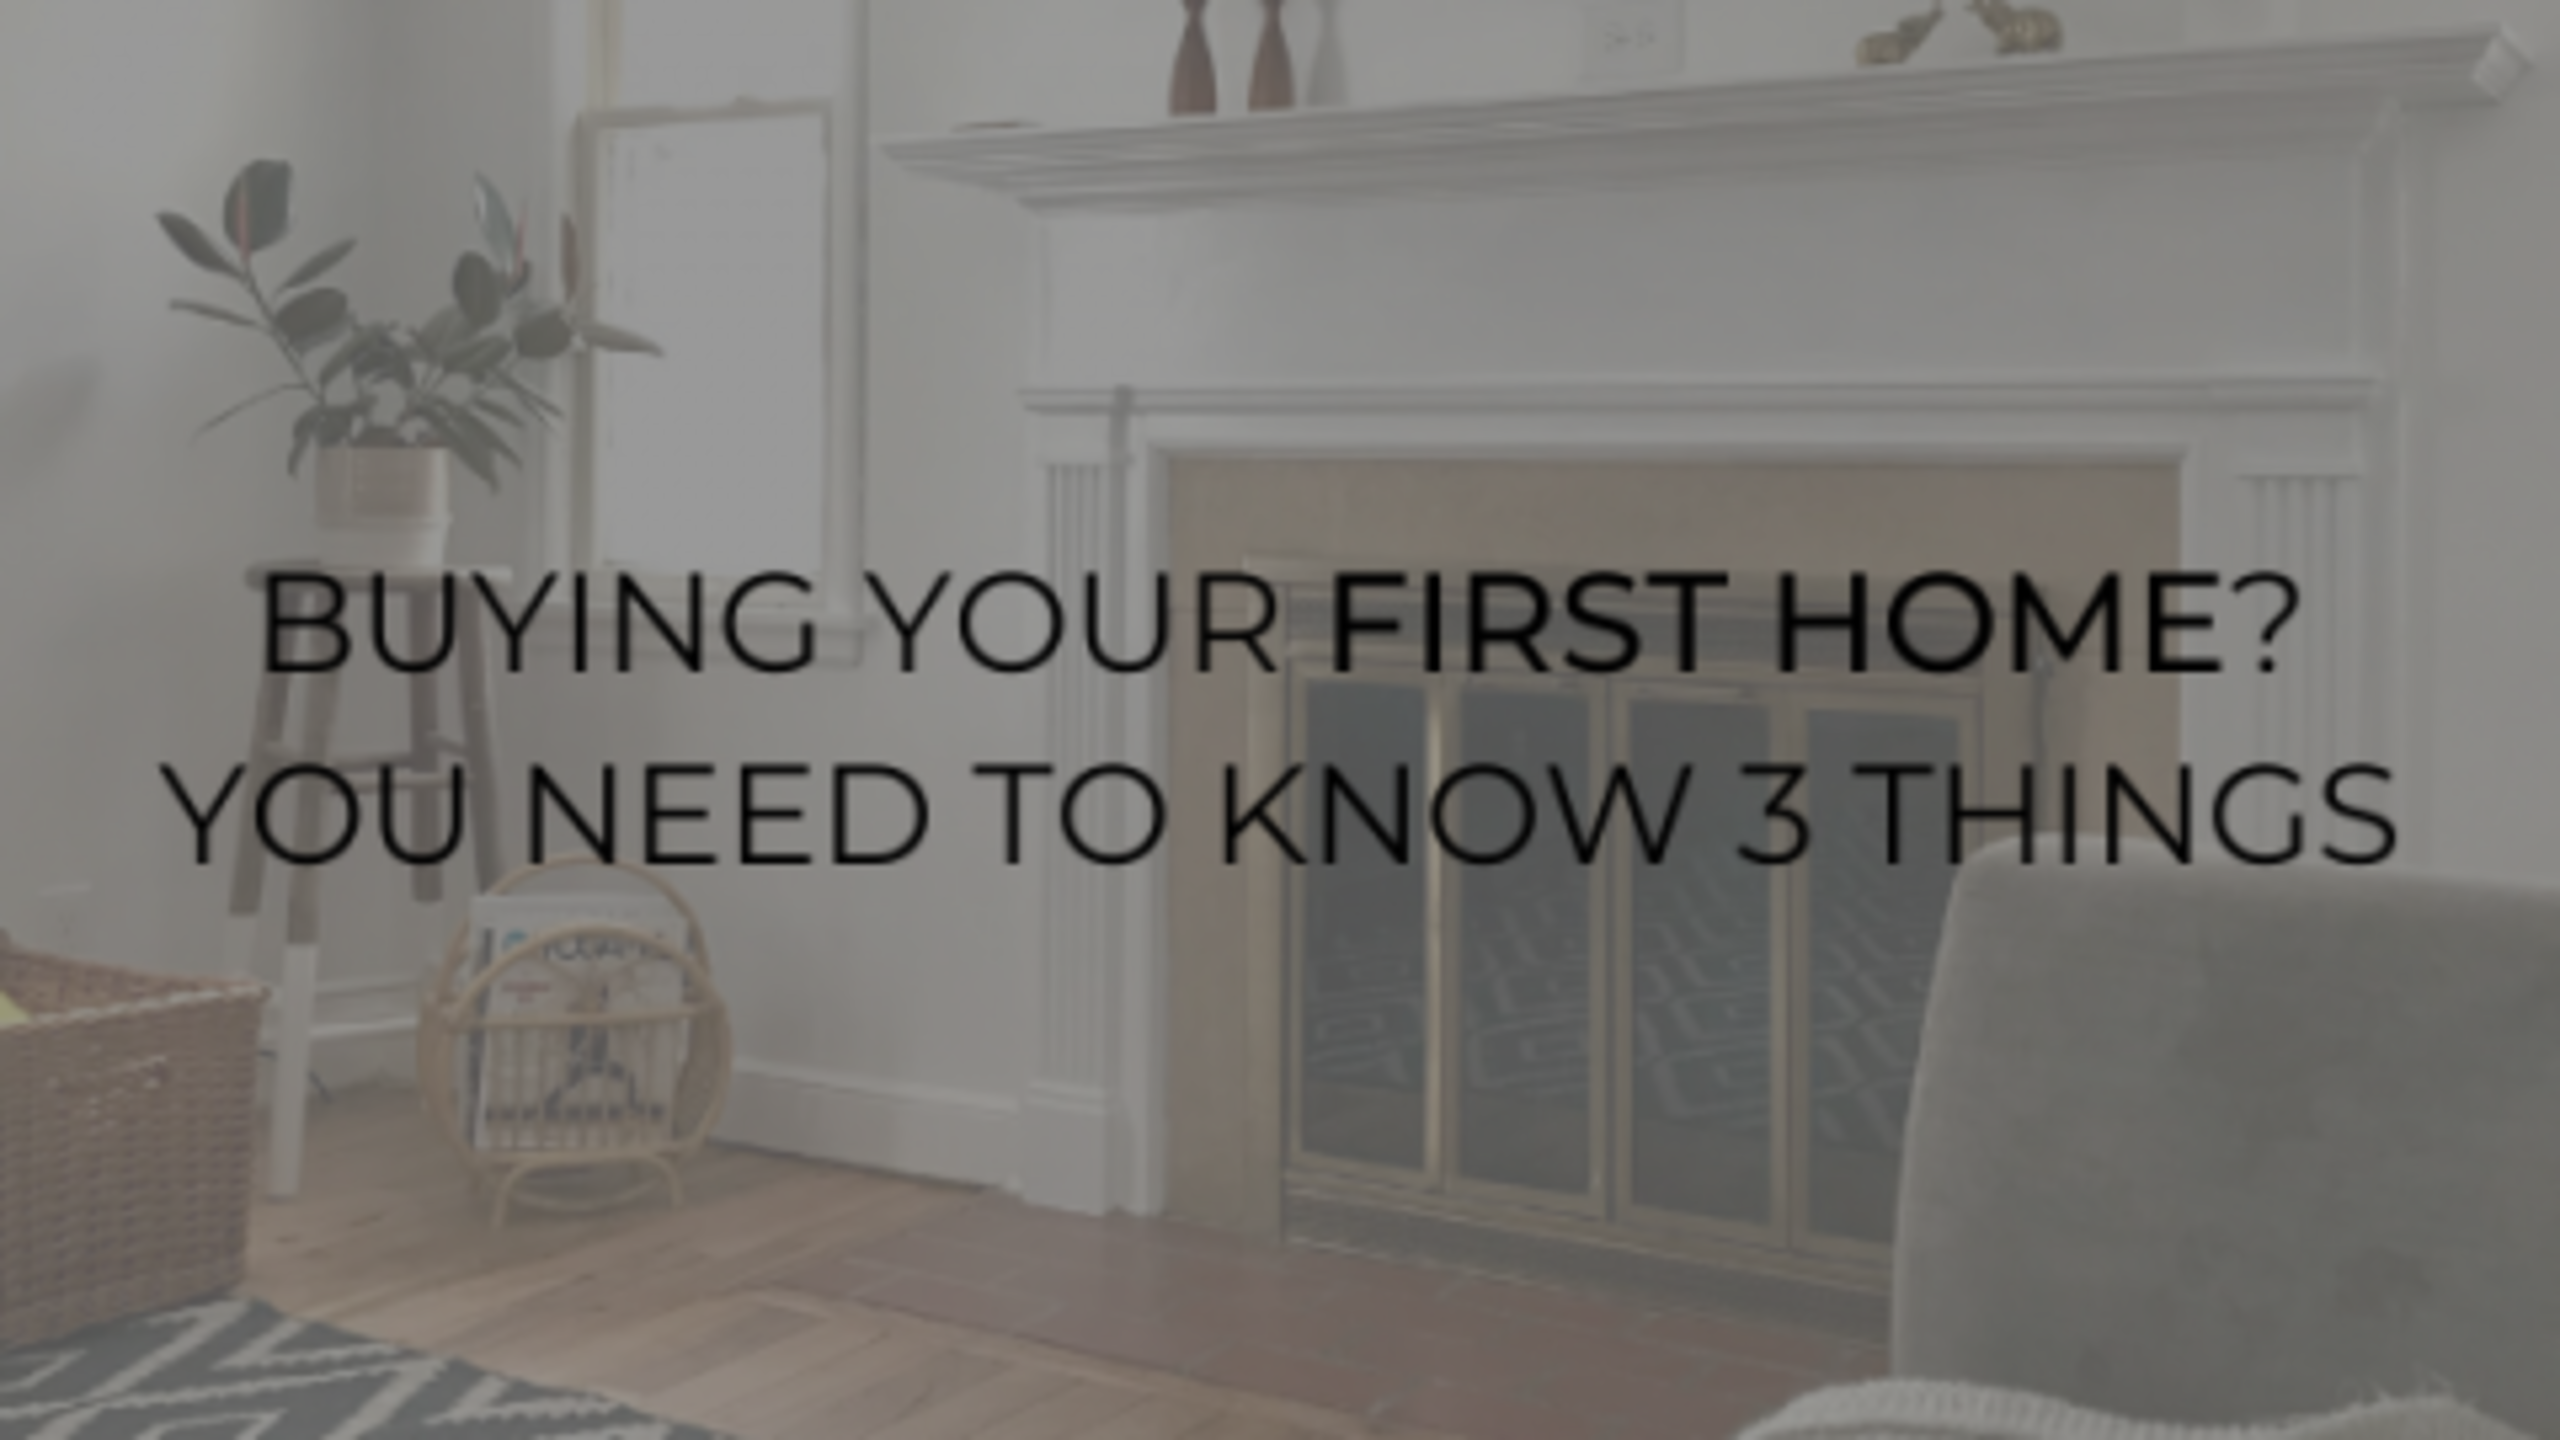 3 Things You Need to Know as a First-Time Homebuyer!